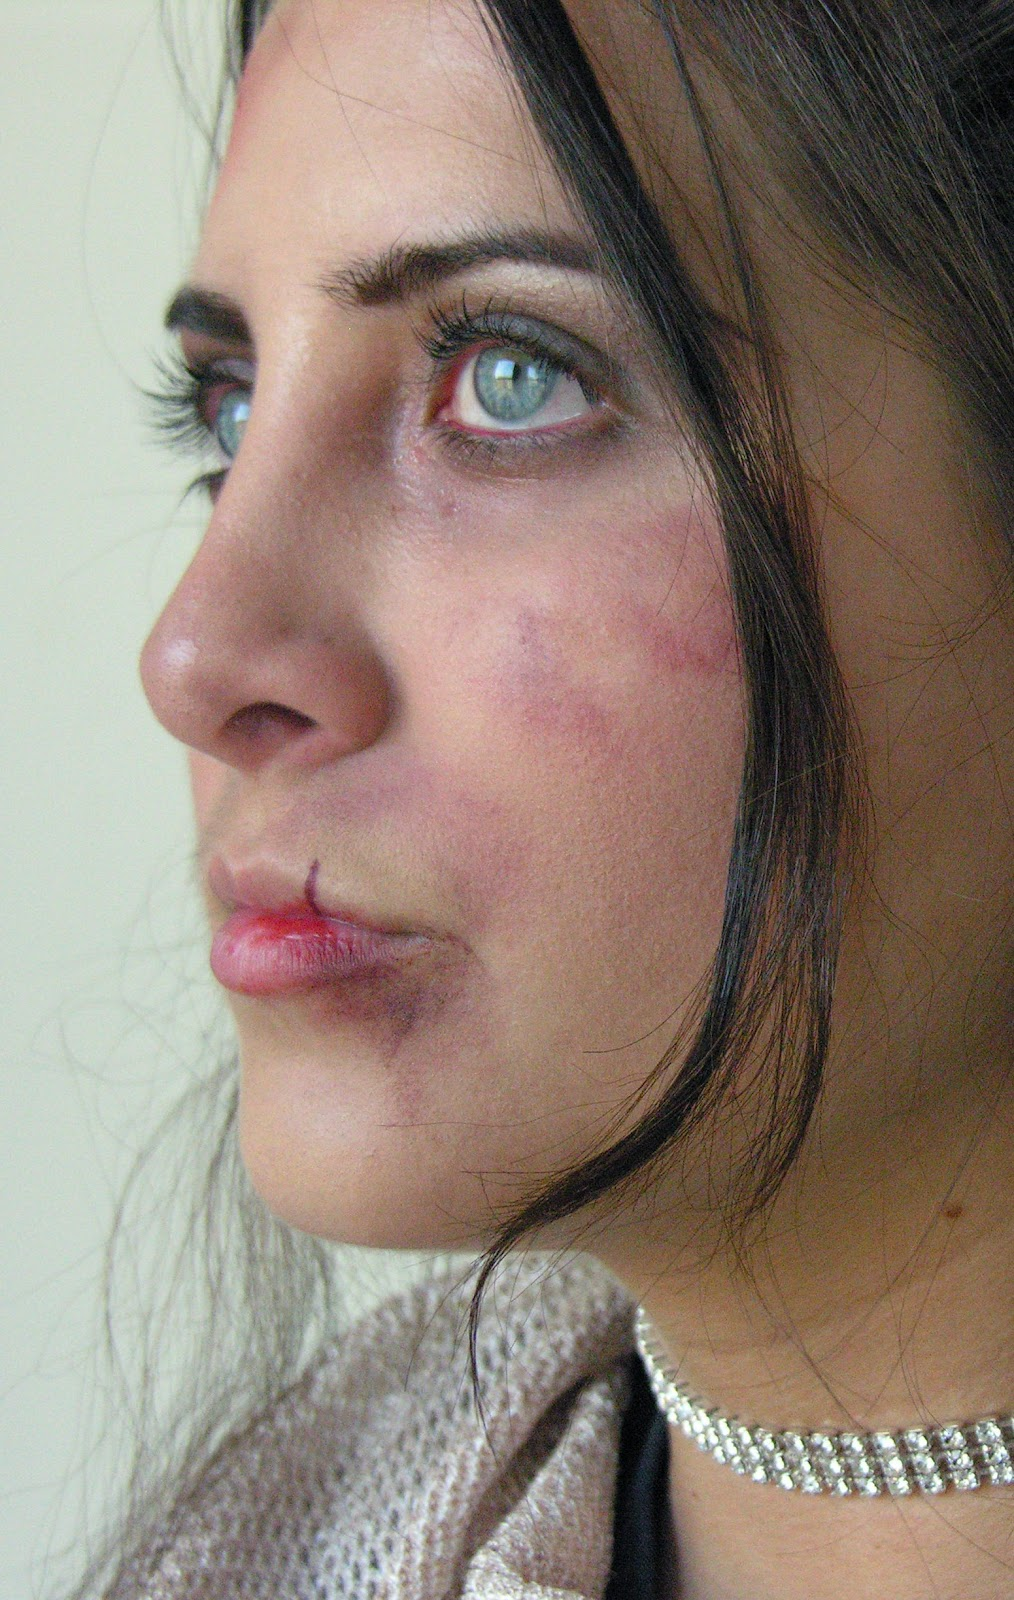 Special Effects Makeup: My New Special Effects And Airbrush Makeup Page Is Under